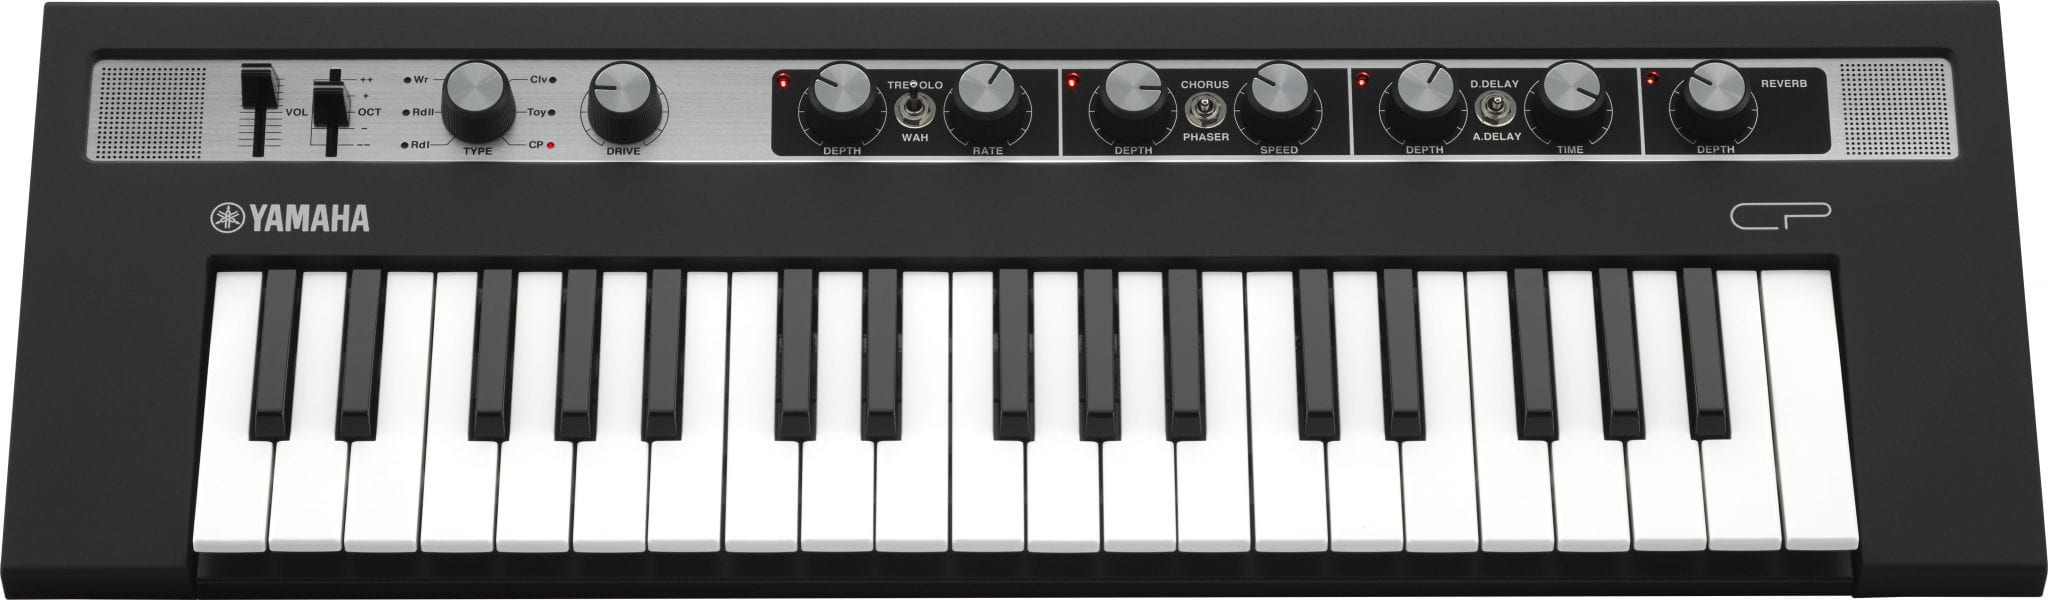 Yamaha RefaceCP Synth